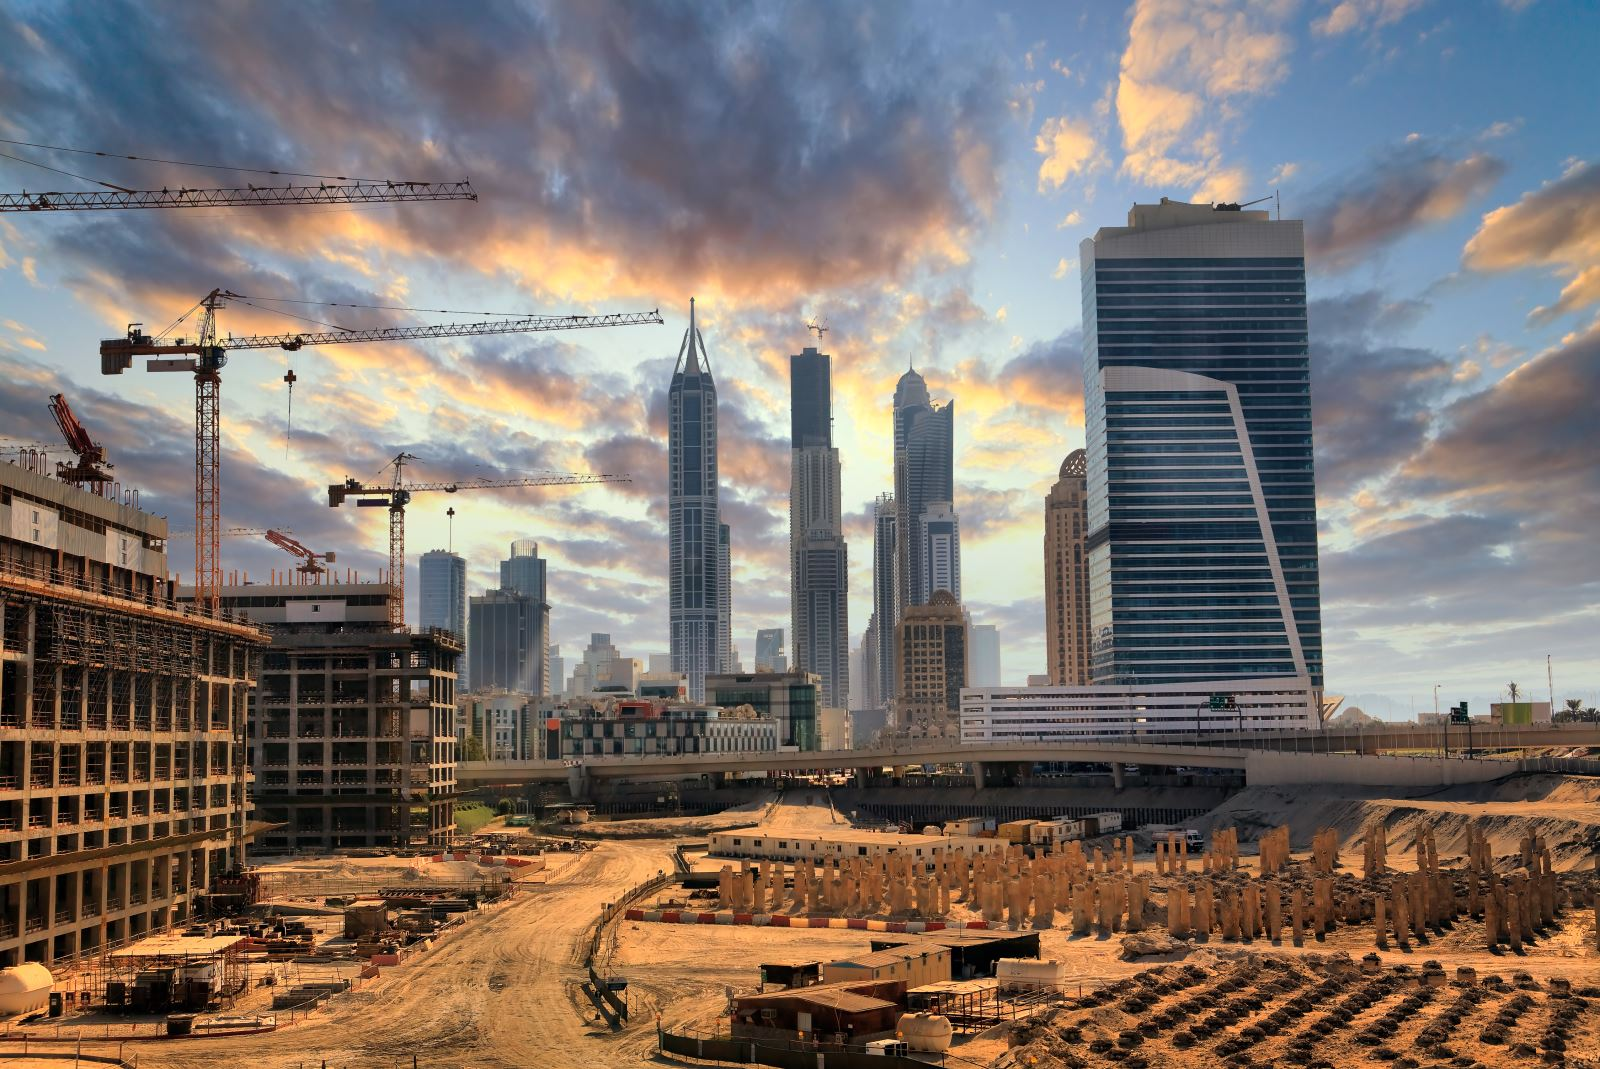 Covid-19's disruption on the construction industry across the Middle East